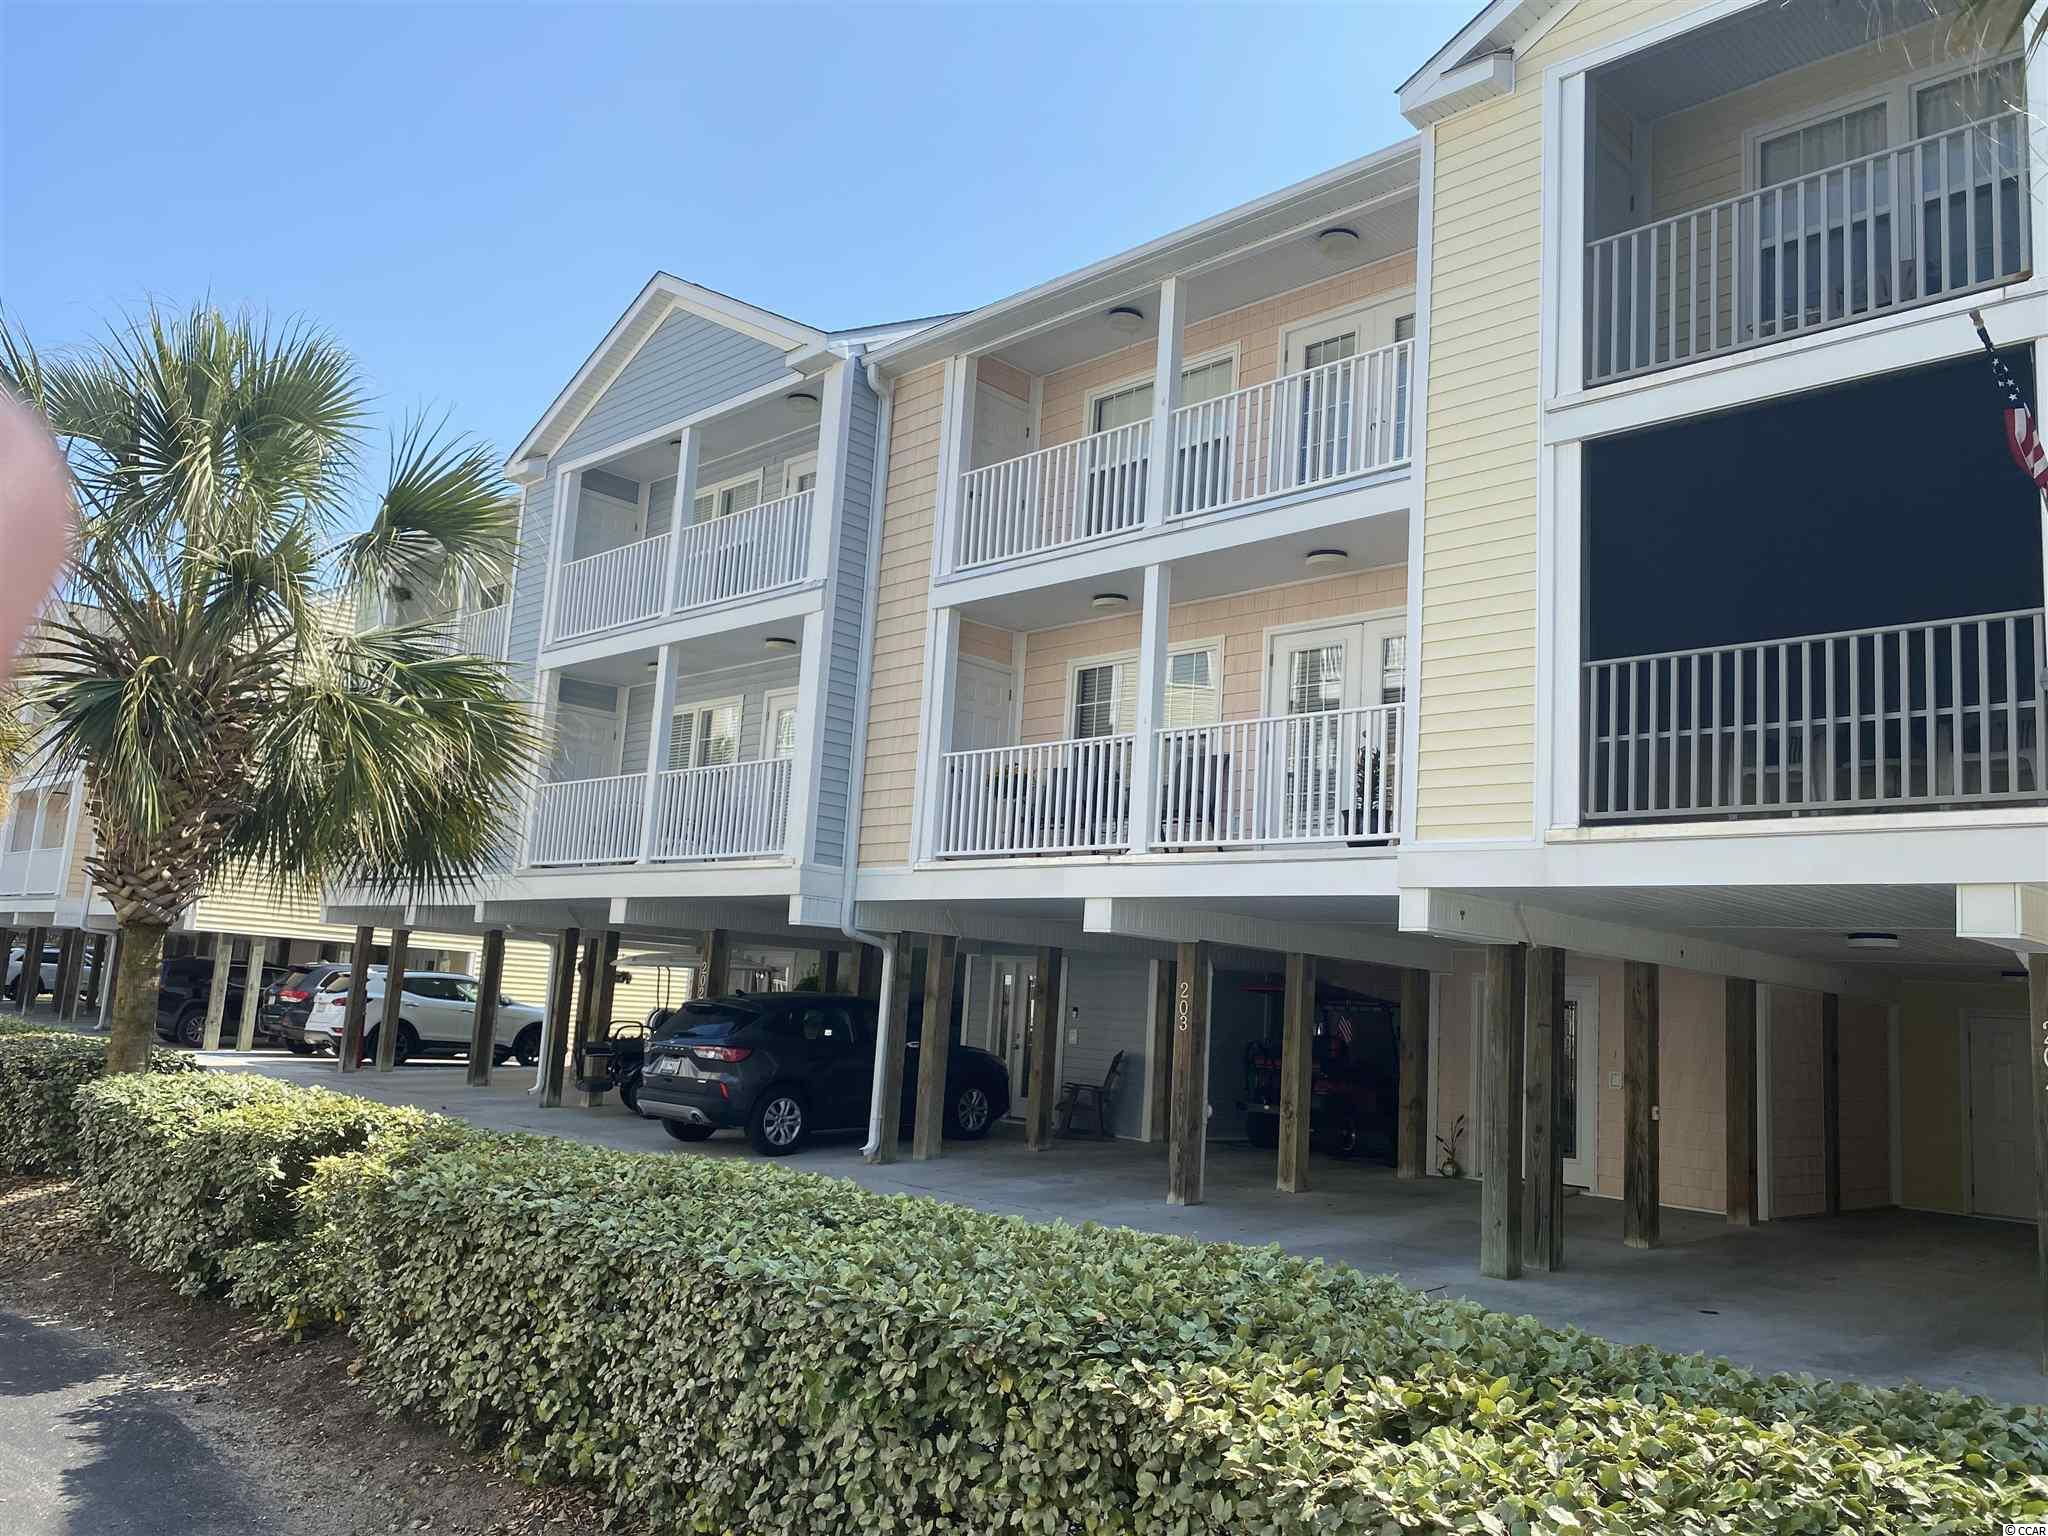 Walk to the Ocean! Located in the Tilghman Beach section of NMB, this 3 story Raised Beach/Townhome style home is in excellent condition and offers: 3 Bedrooms, 3 Baths, Granite Counter Tops, Interior Elevator, Crown Moldings, Golf Cart Storage, Community Pool and is within walking distance to the Ocean.